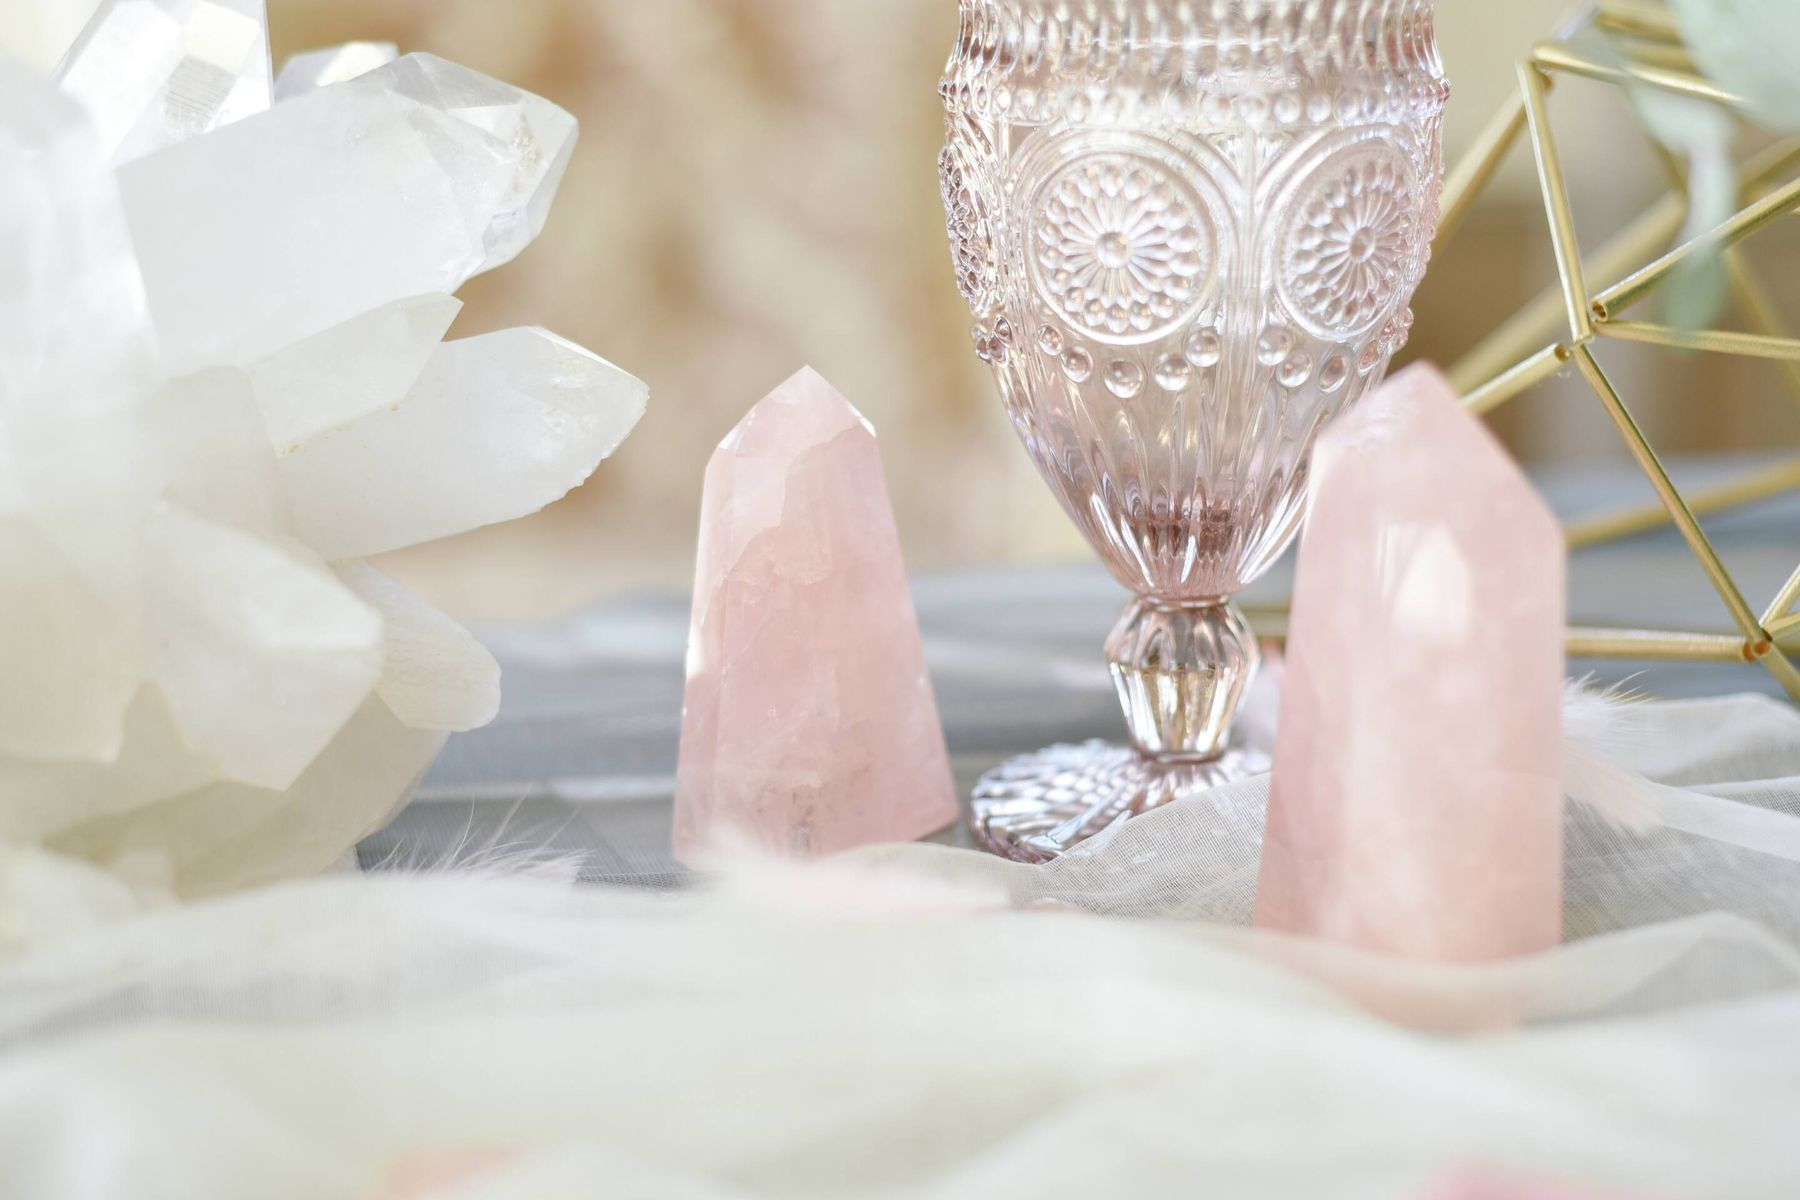 3 Easy Tips to Clean Your Crystal Collectibles | Cleanipedia